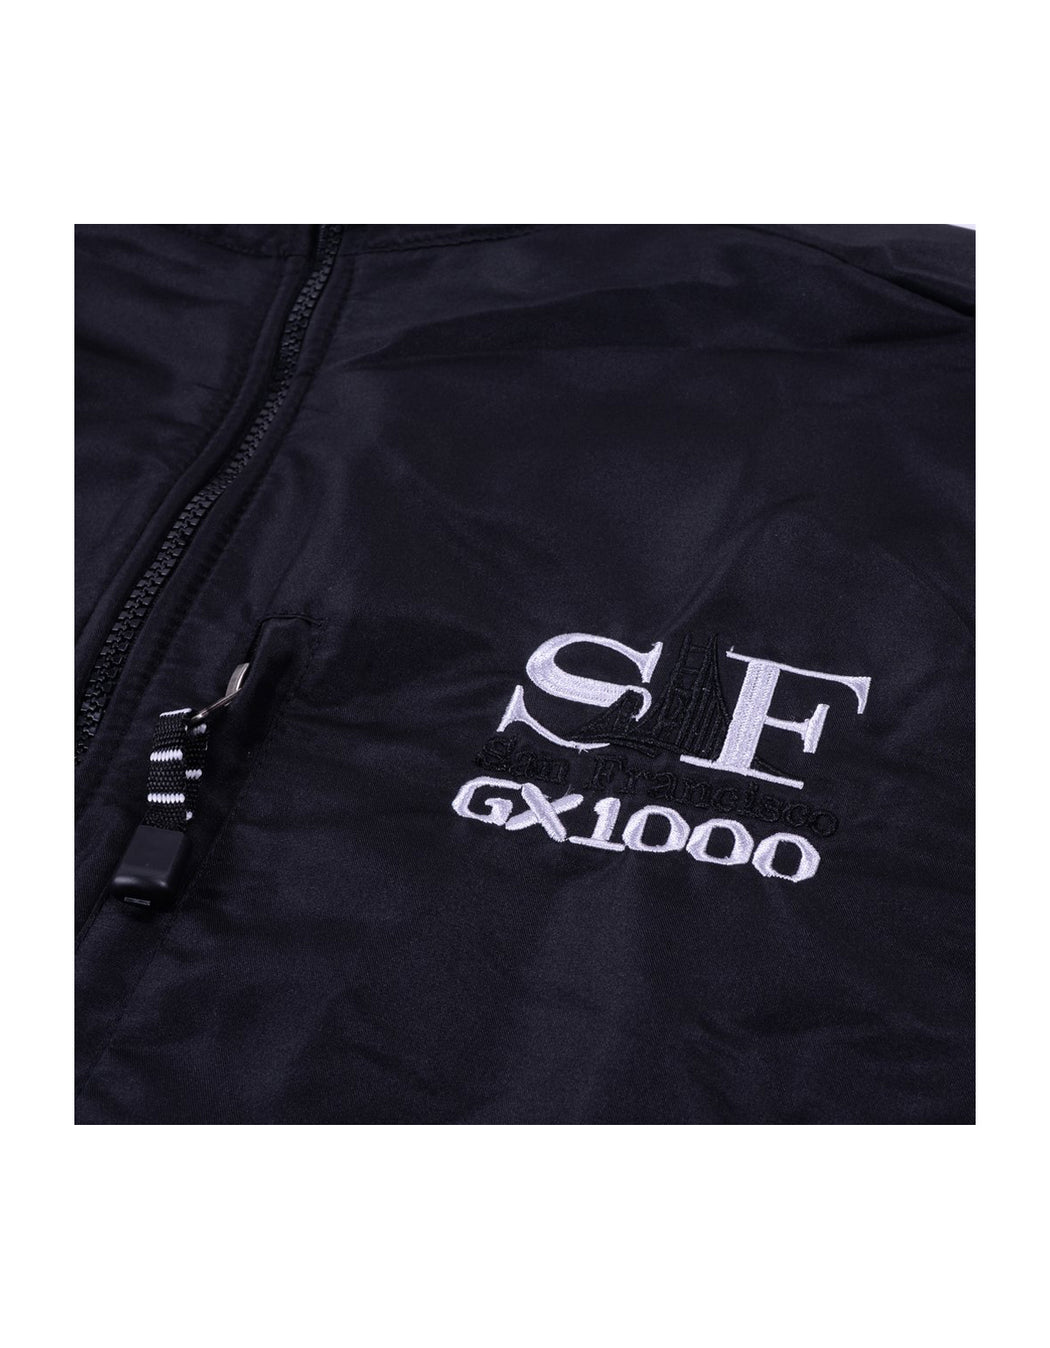 GX1000 SFGX Fleece Black